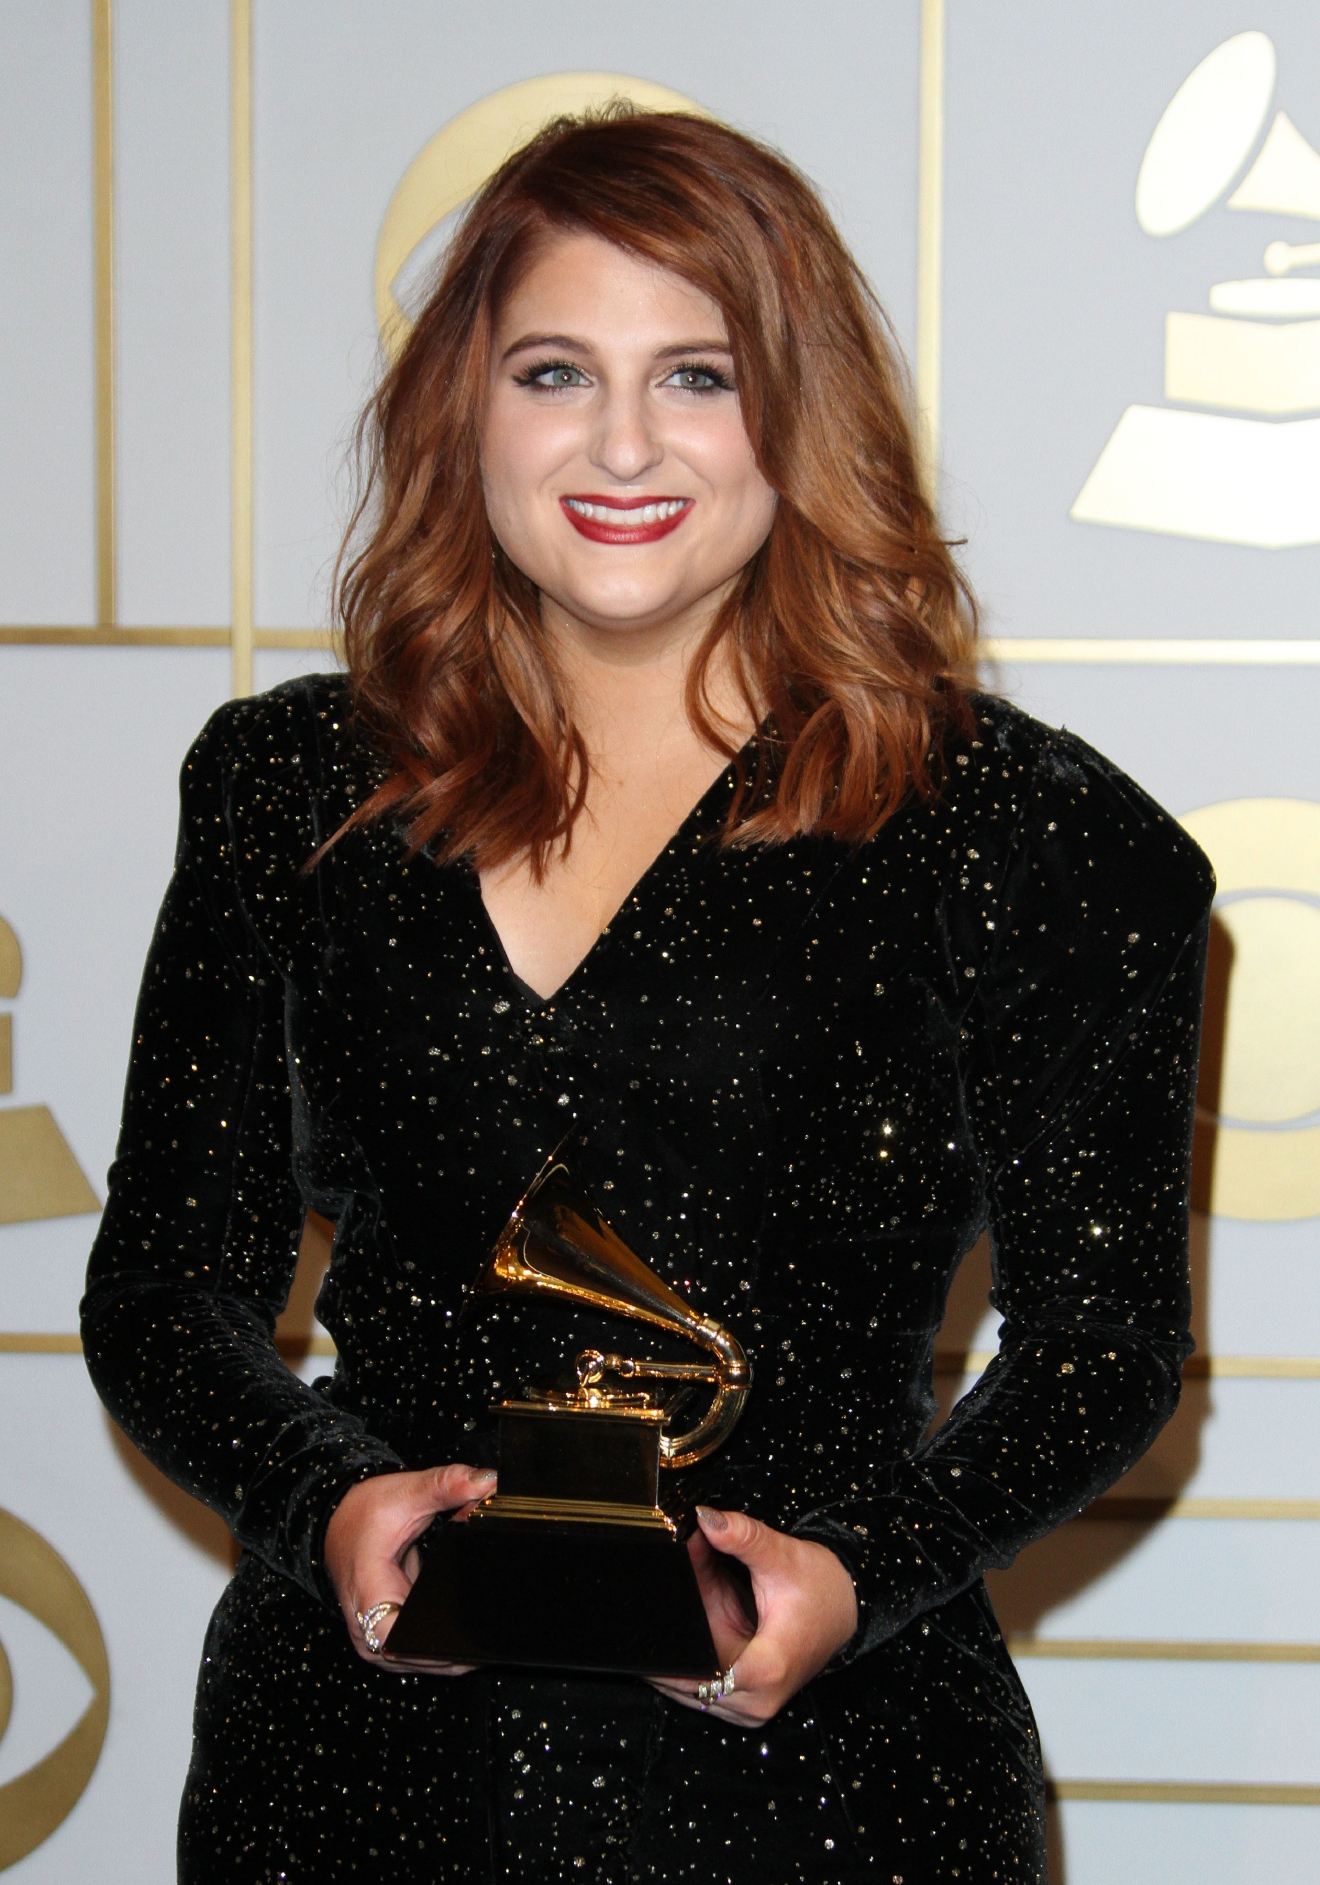 58th Annual GRAMMY Press Room 2016 - Arrivals held at the Staples Center                                    Featuring: Meghan Trainor                  Where: Los Angeles, California, United States                  When: 16 Feb 2016                  Credit: Adriana M. Barraza/WENN.com